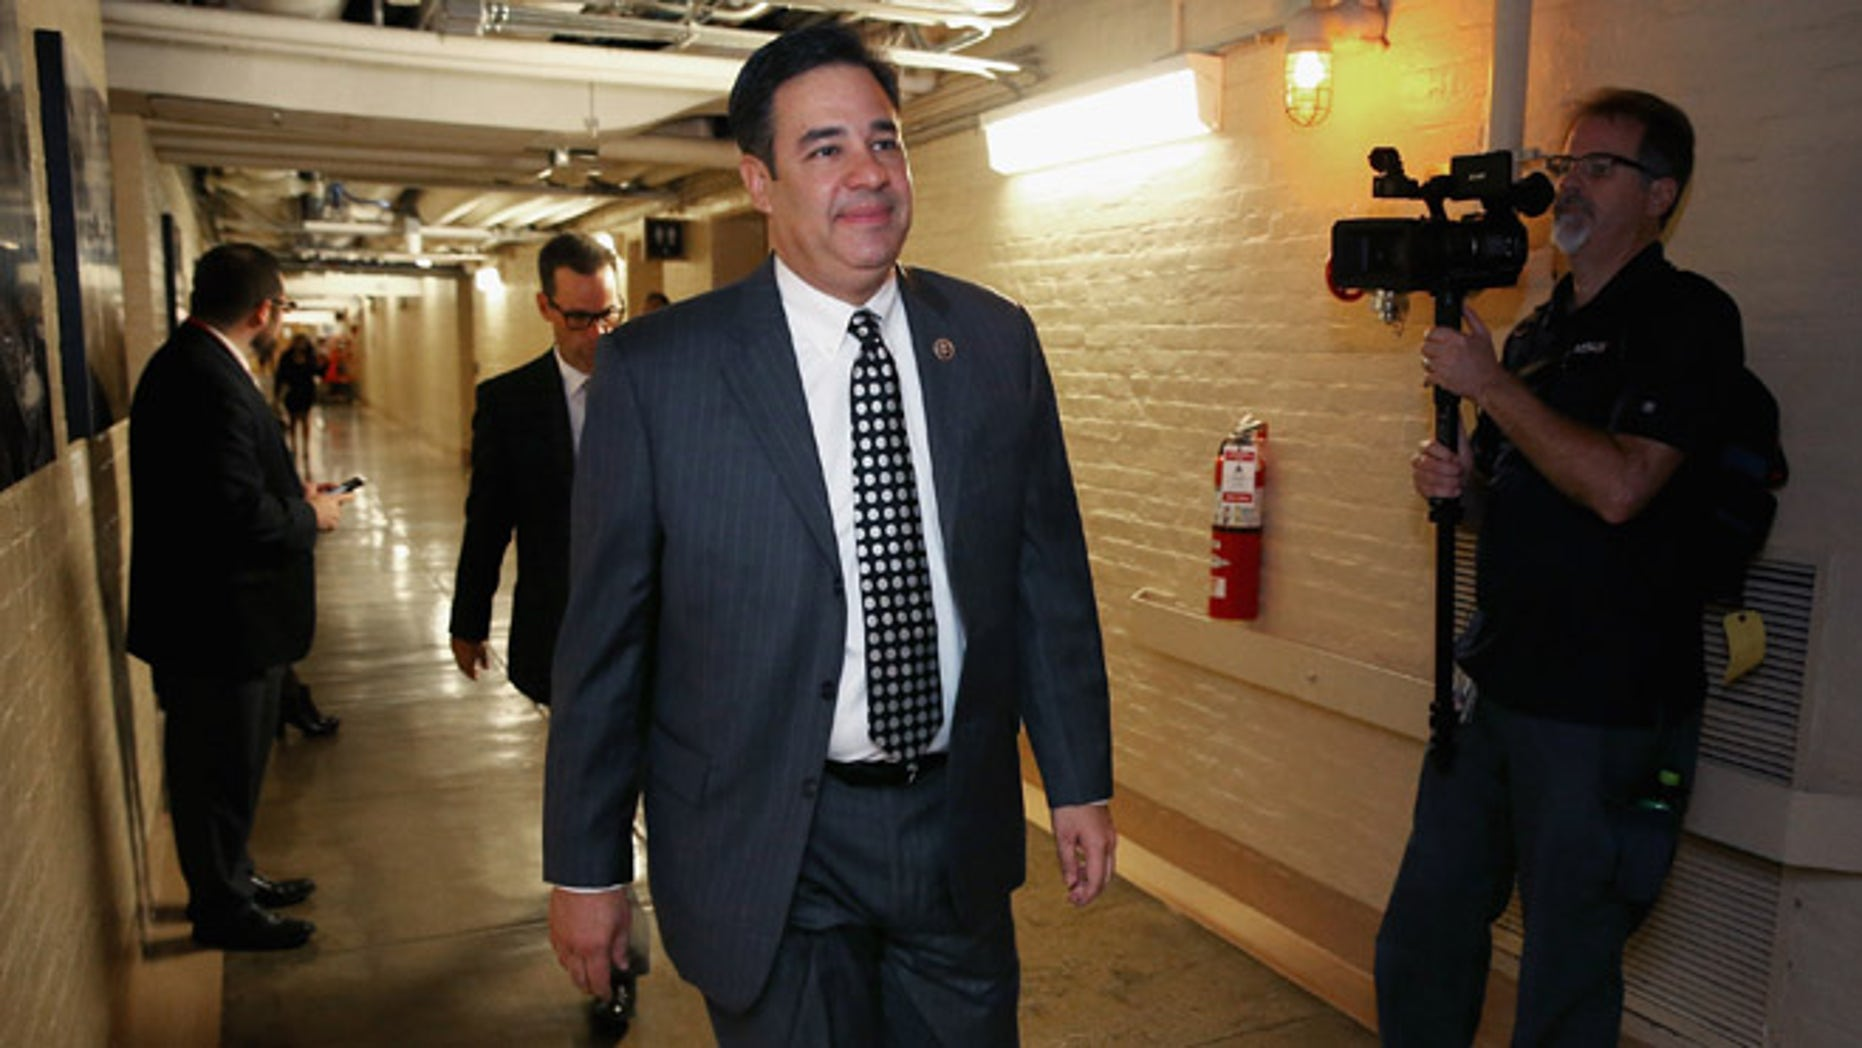 WASHINGTON, DC - OCTOBER 28:  Rep. Raul Labrador (R-ID) heads for a House GOP candidates forum at the U.S. Capitol October 28, 2015 in Washington, DC. Labrador is a member of the far-right Freedom Caucus, which endorsed Rep. Daniel Webster (R-FL) over House Ways and Means Committee Chairman Paul Ryan (R-WI) for the speakership after Speaker of the House John Boehner (R-OH) announced his retirement.  (Photo by Chip Somodevilla/Getty Images)